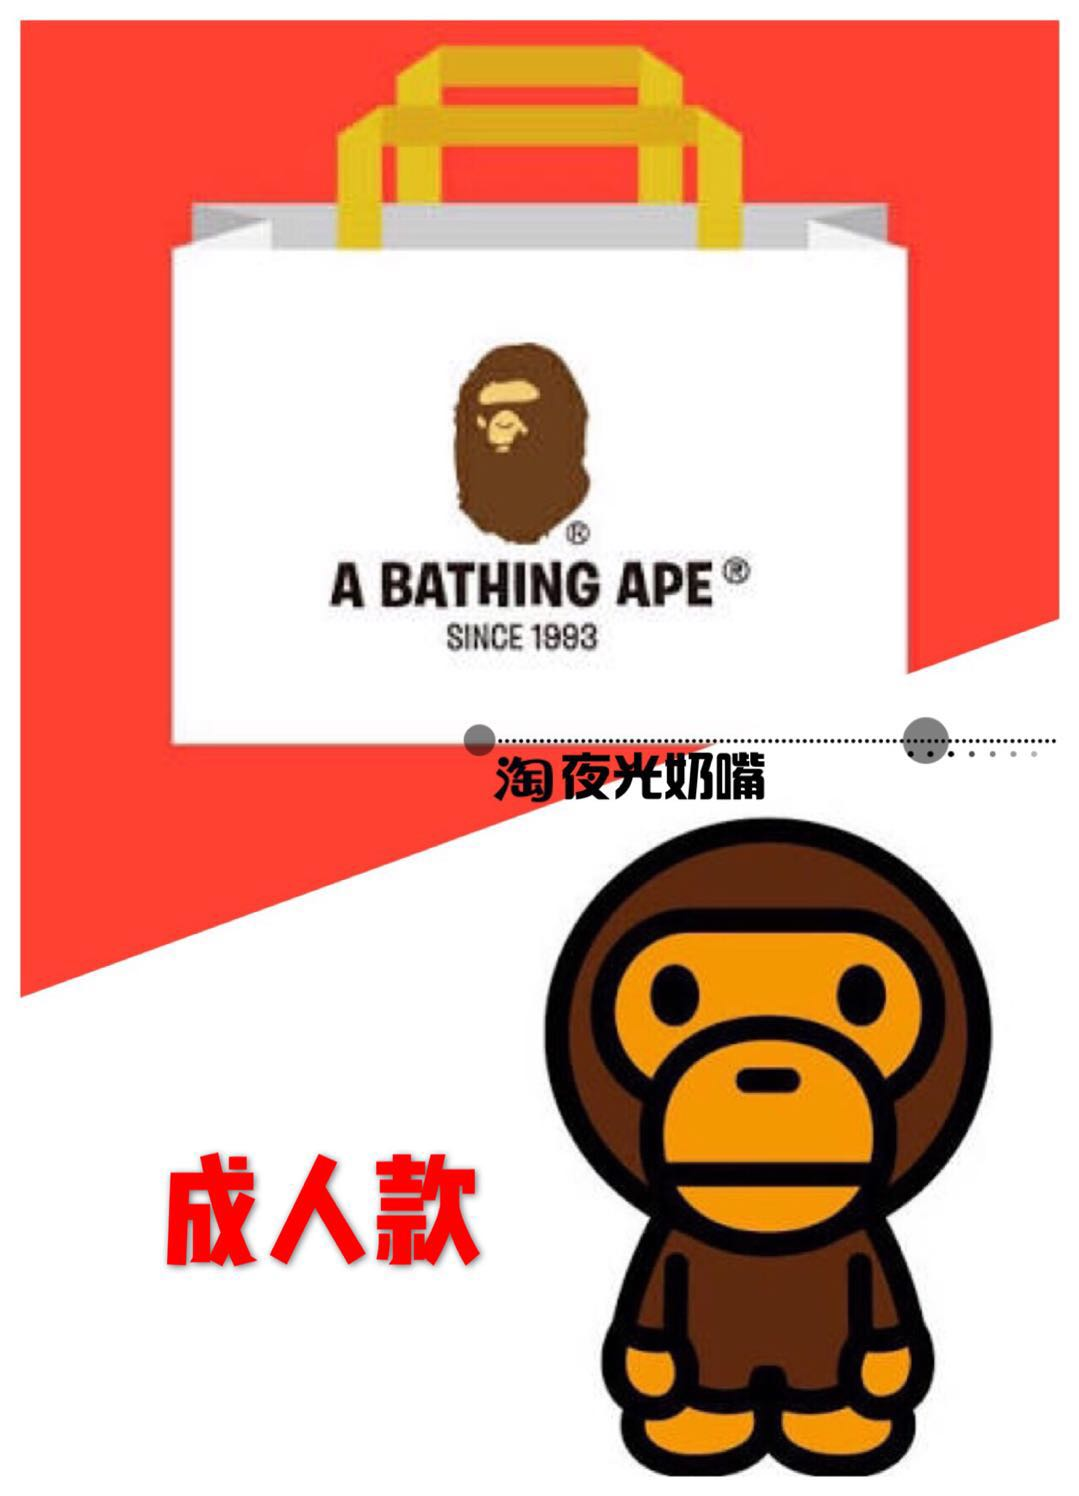 【奶嘴店】A BATHING APE BAPE man's 2018年 福袋 普通版